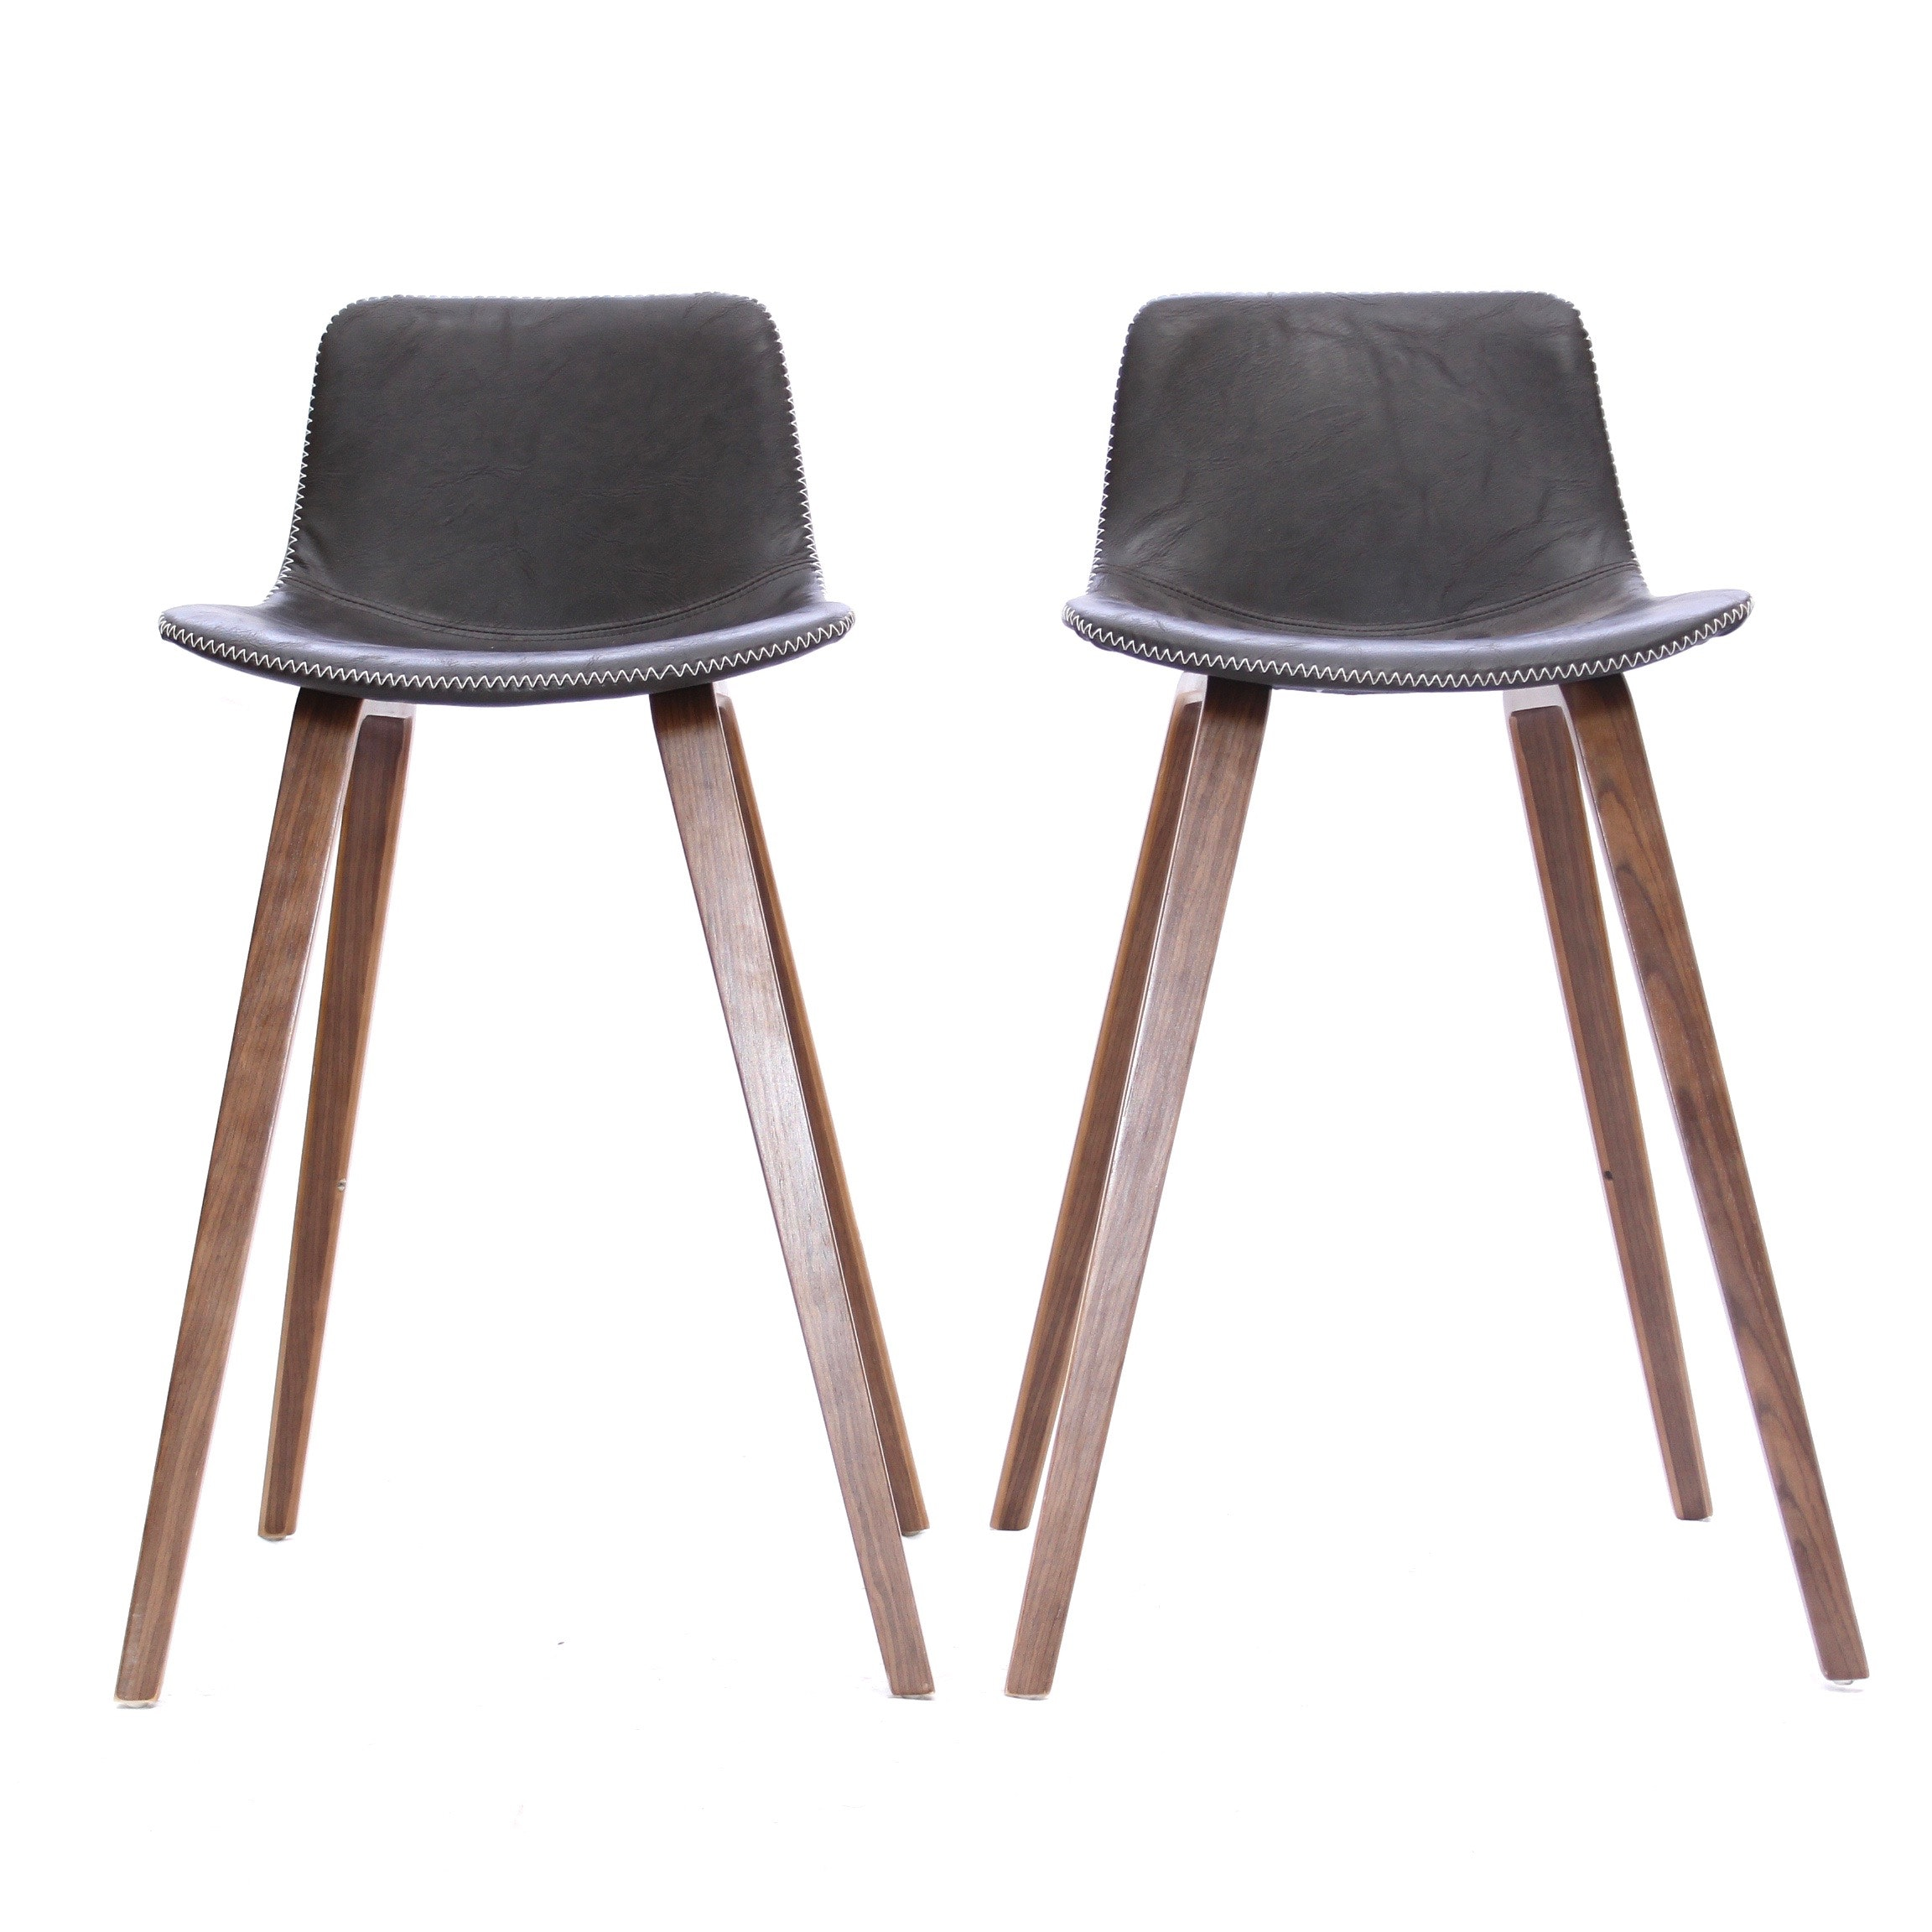 Two Leather Mid-Century Modern Style Bar Stools, Contemporary